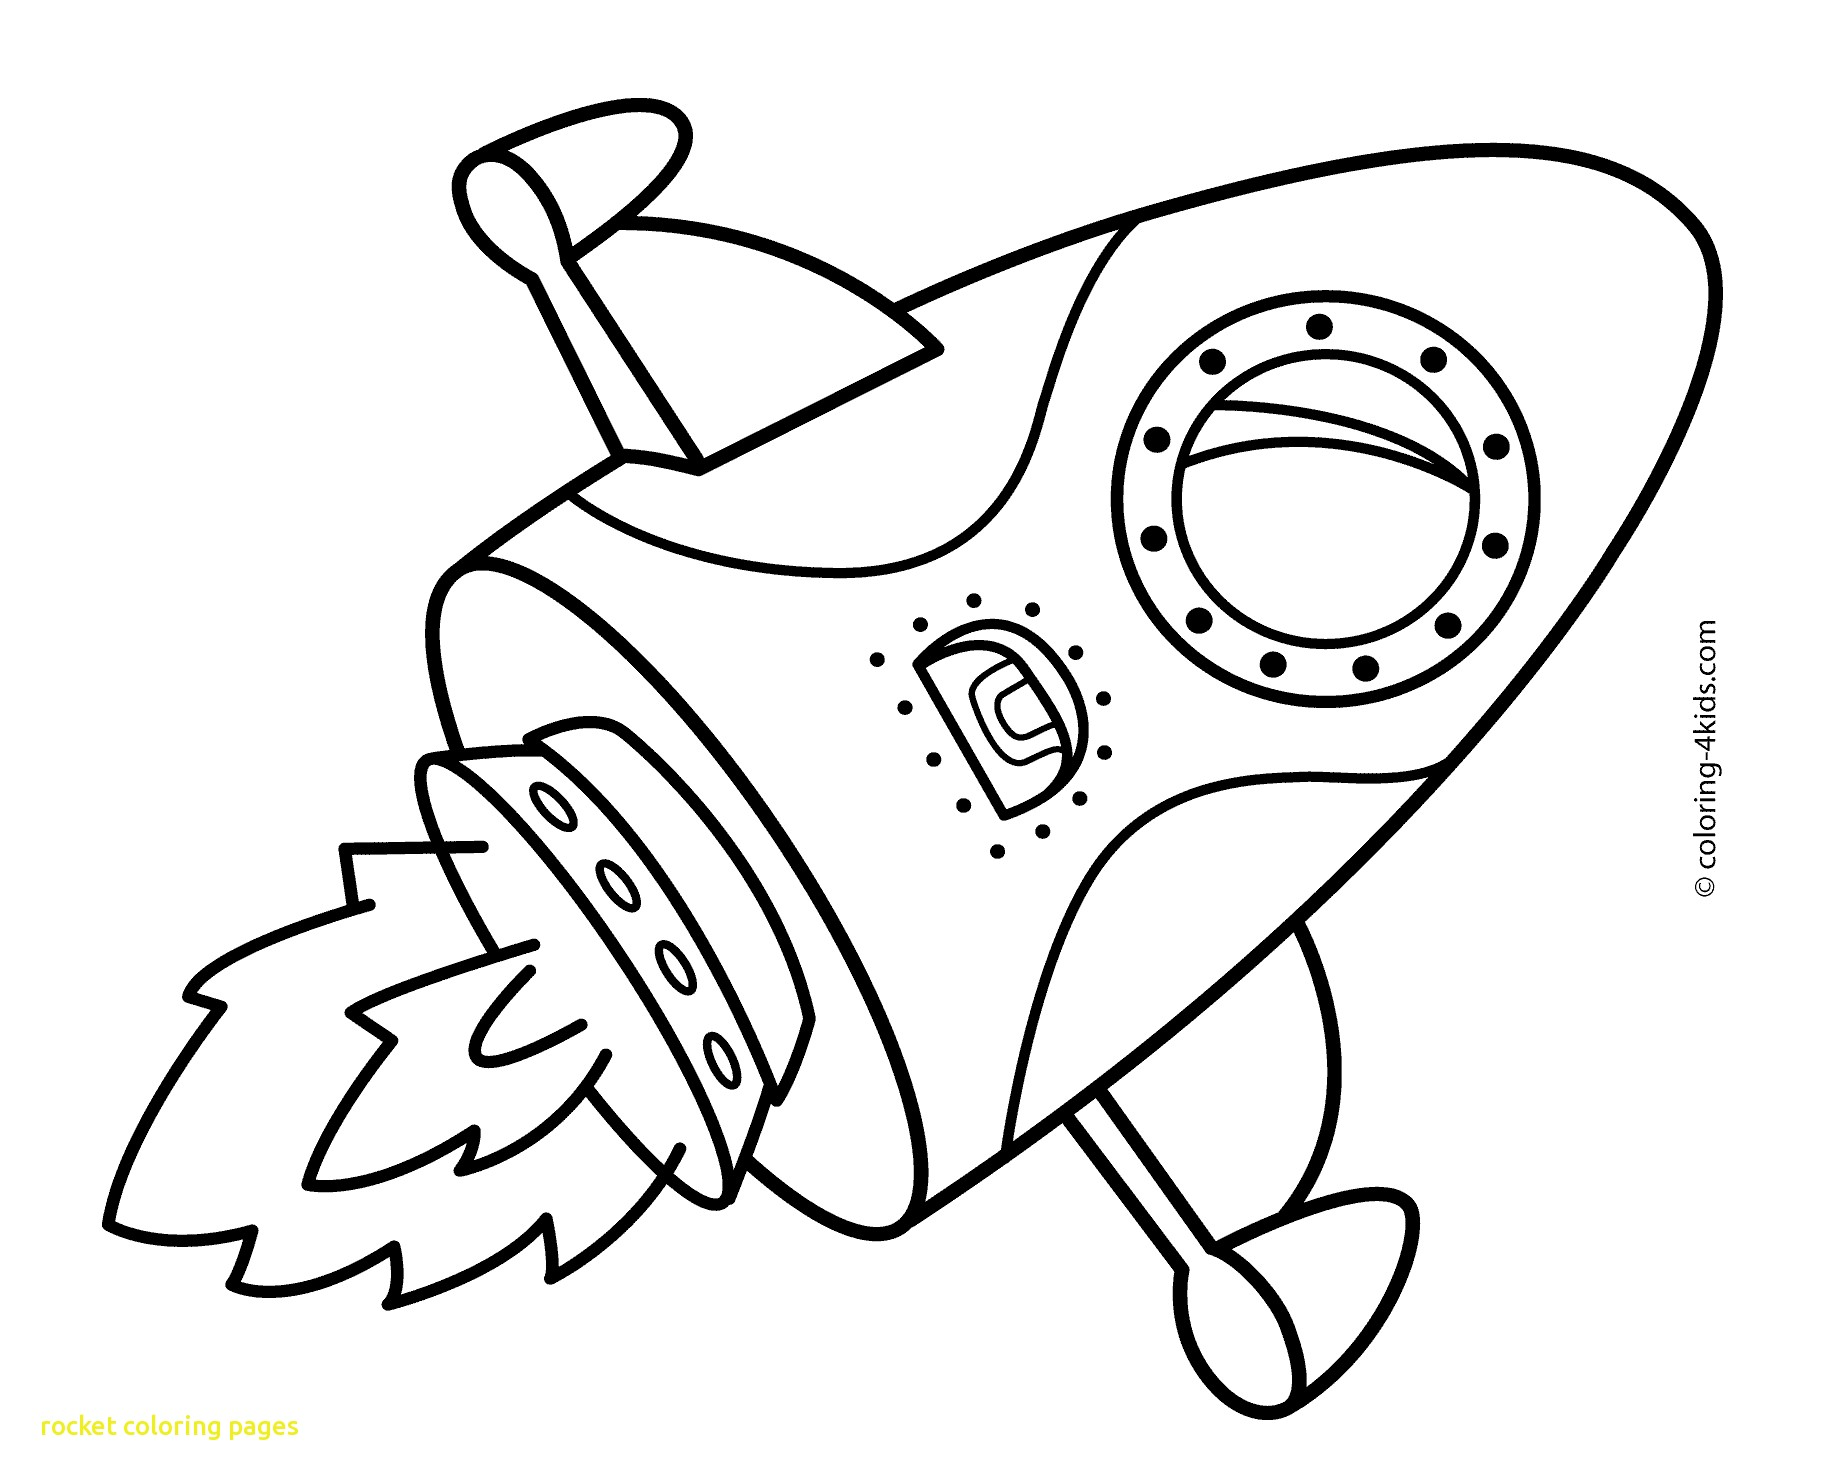 Page clipart coloring. Rocket pages with colouring